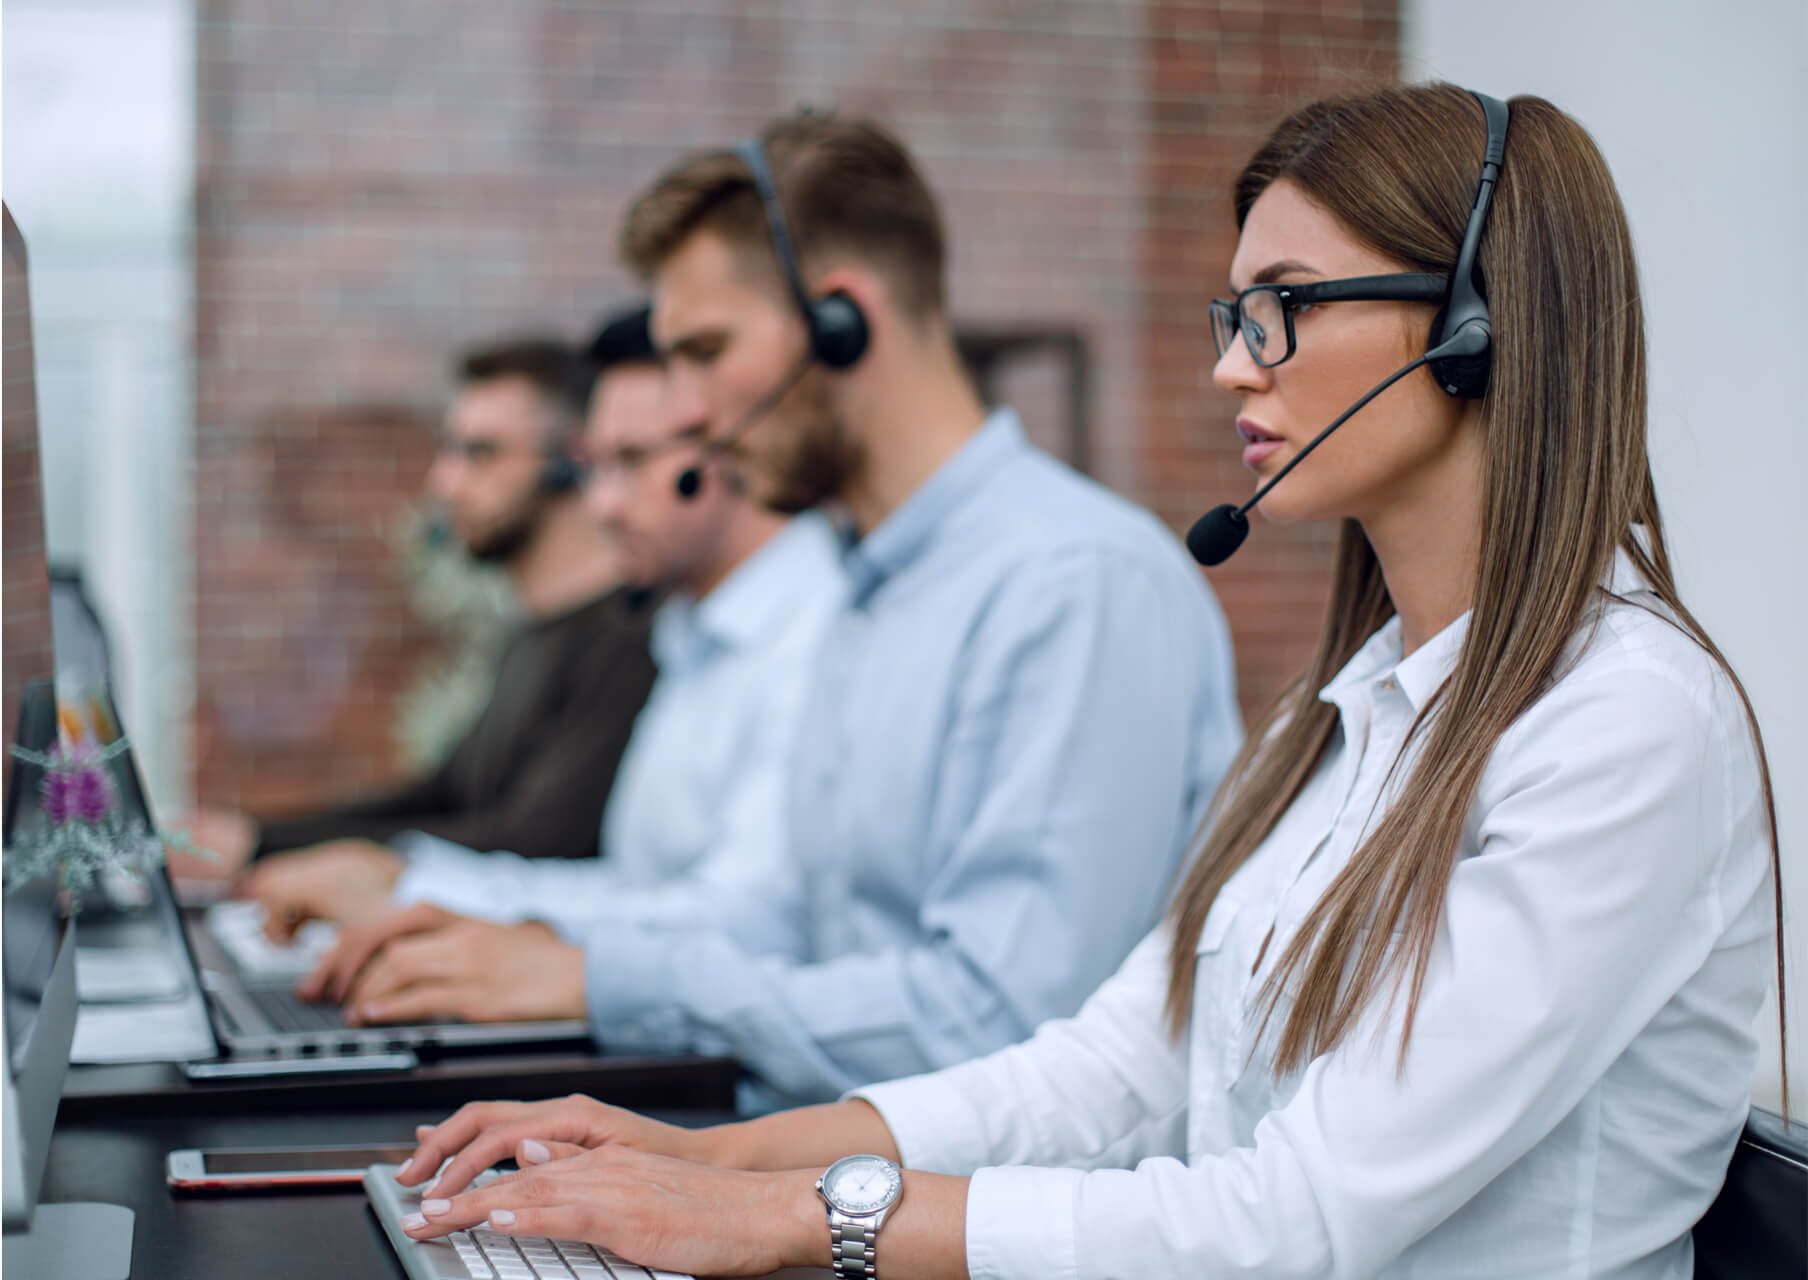 Professionals sitting in a row on headsets and desktops.